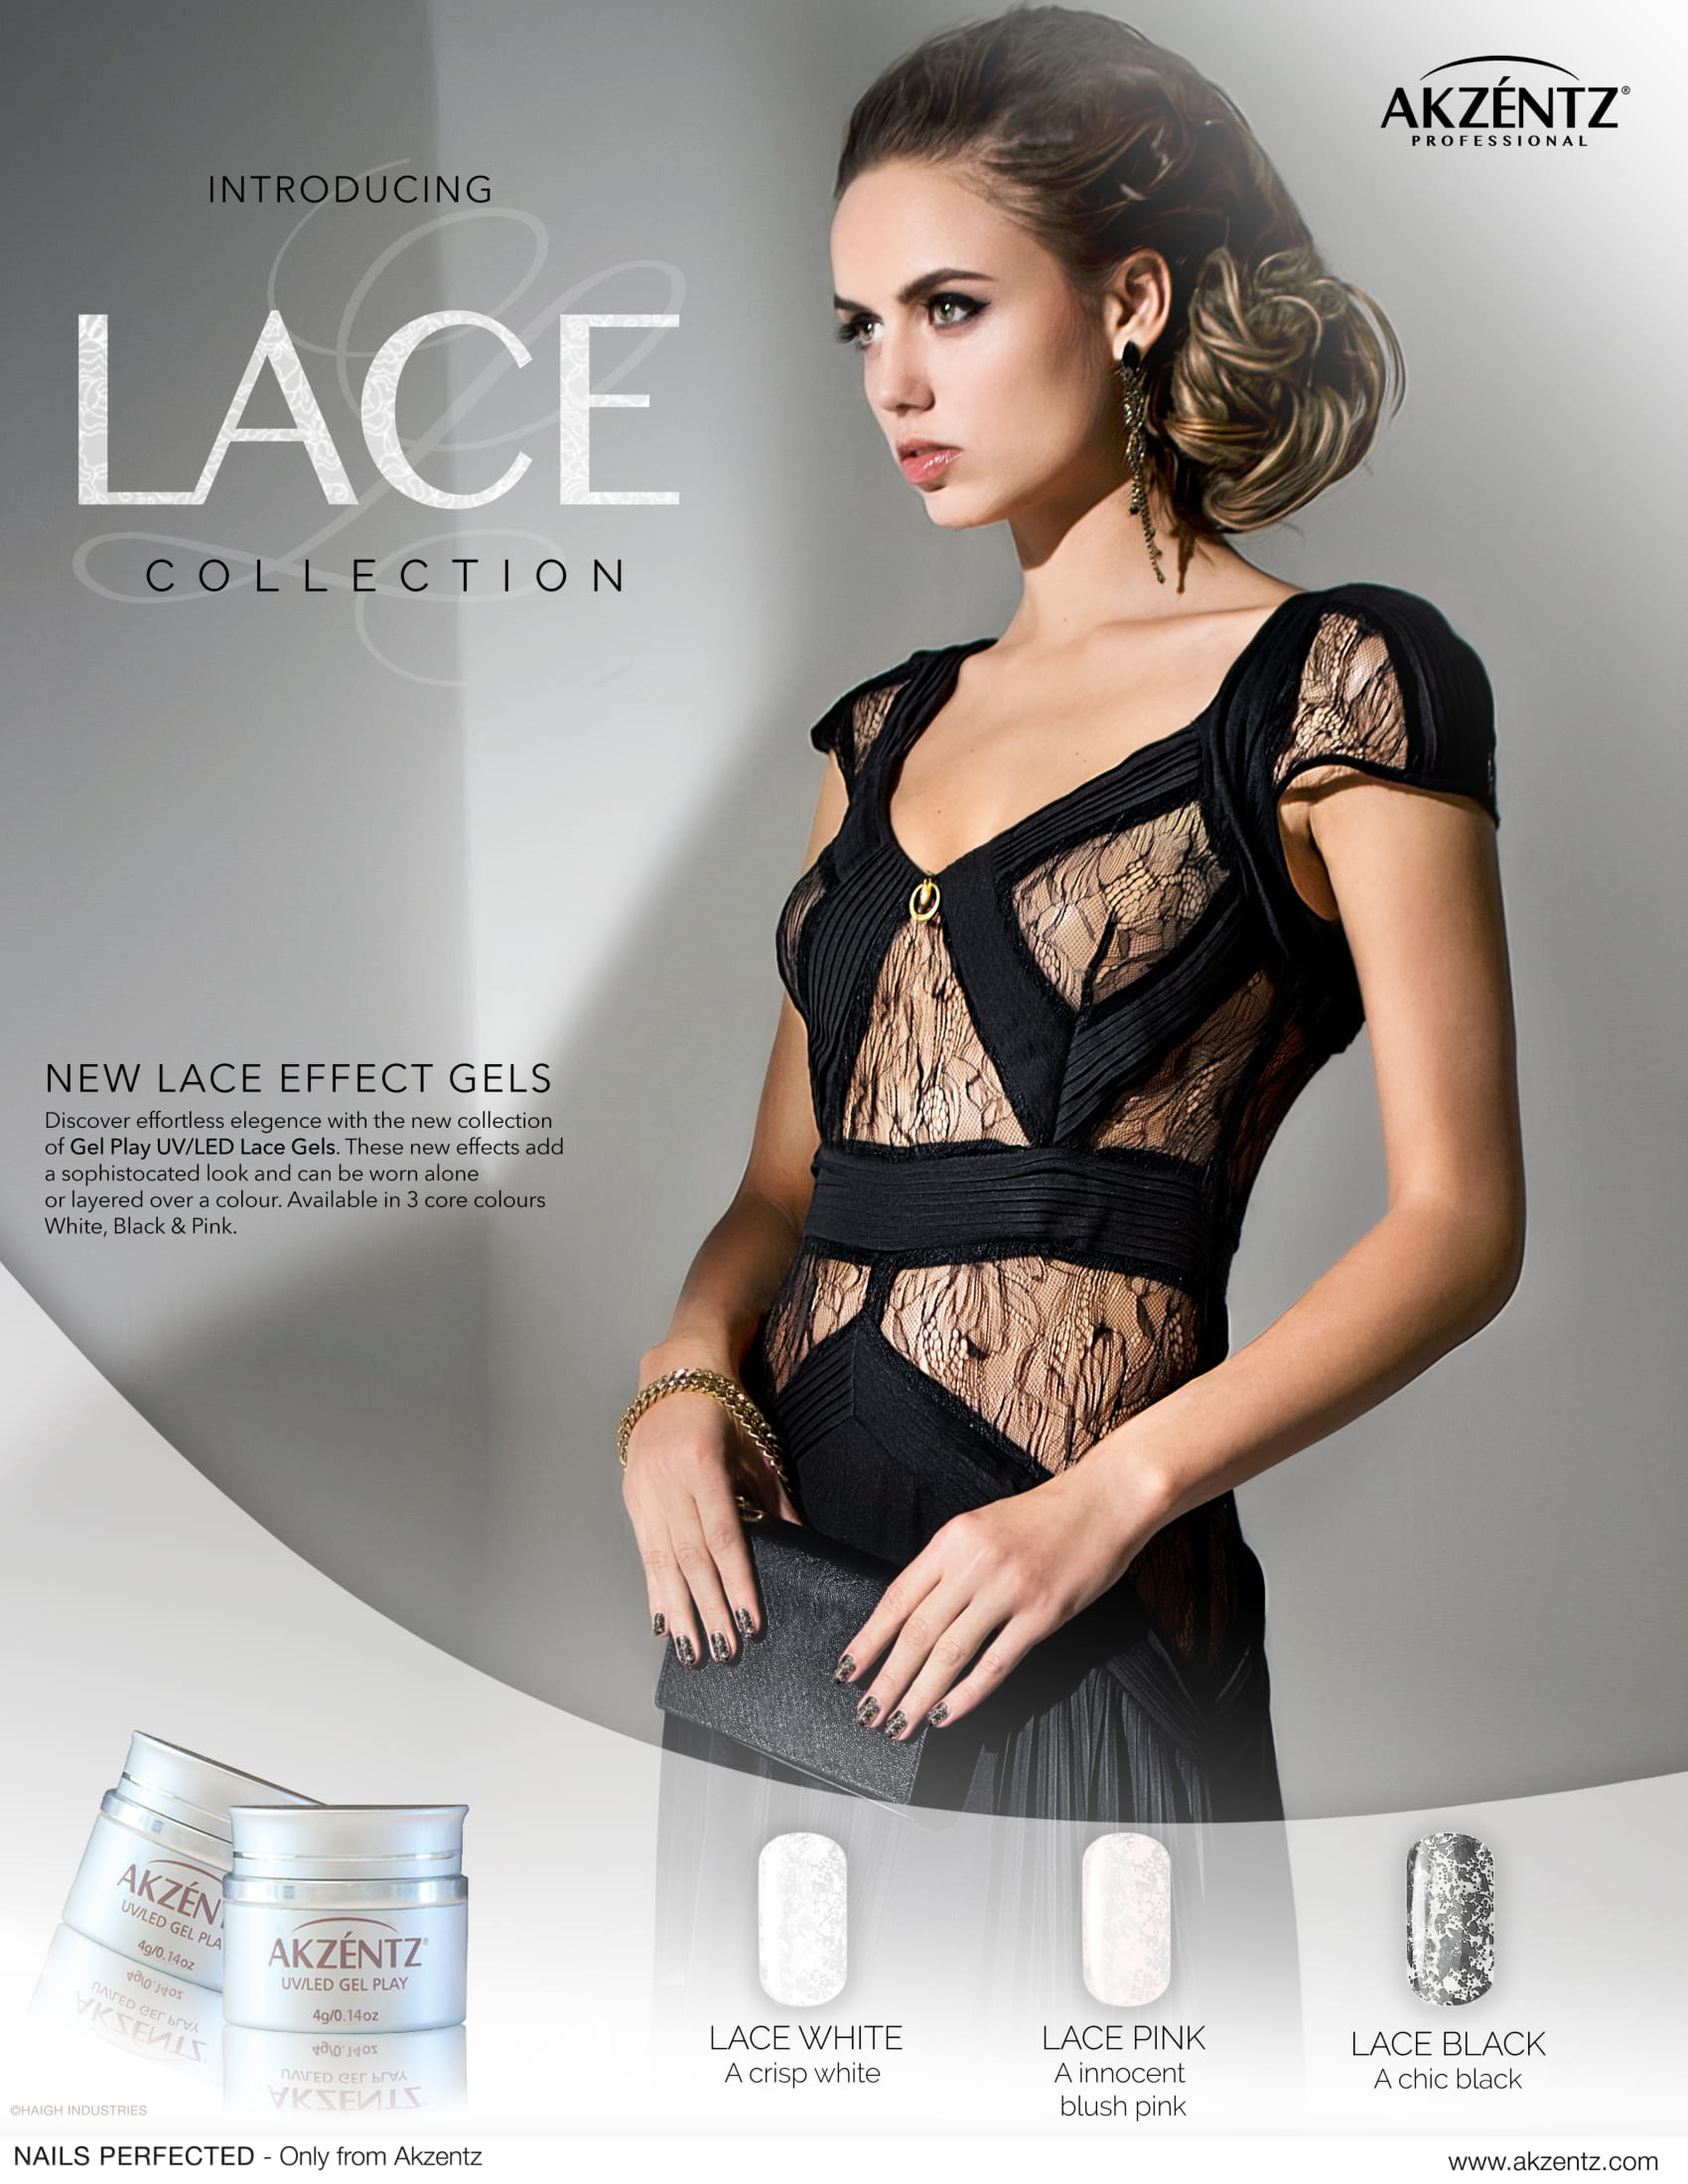 the Lace Collection